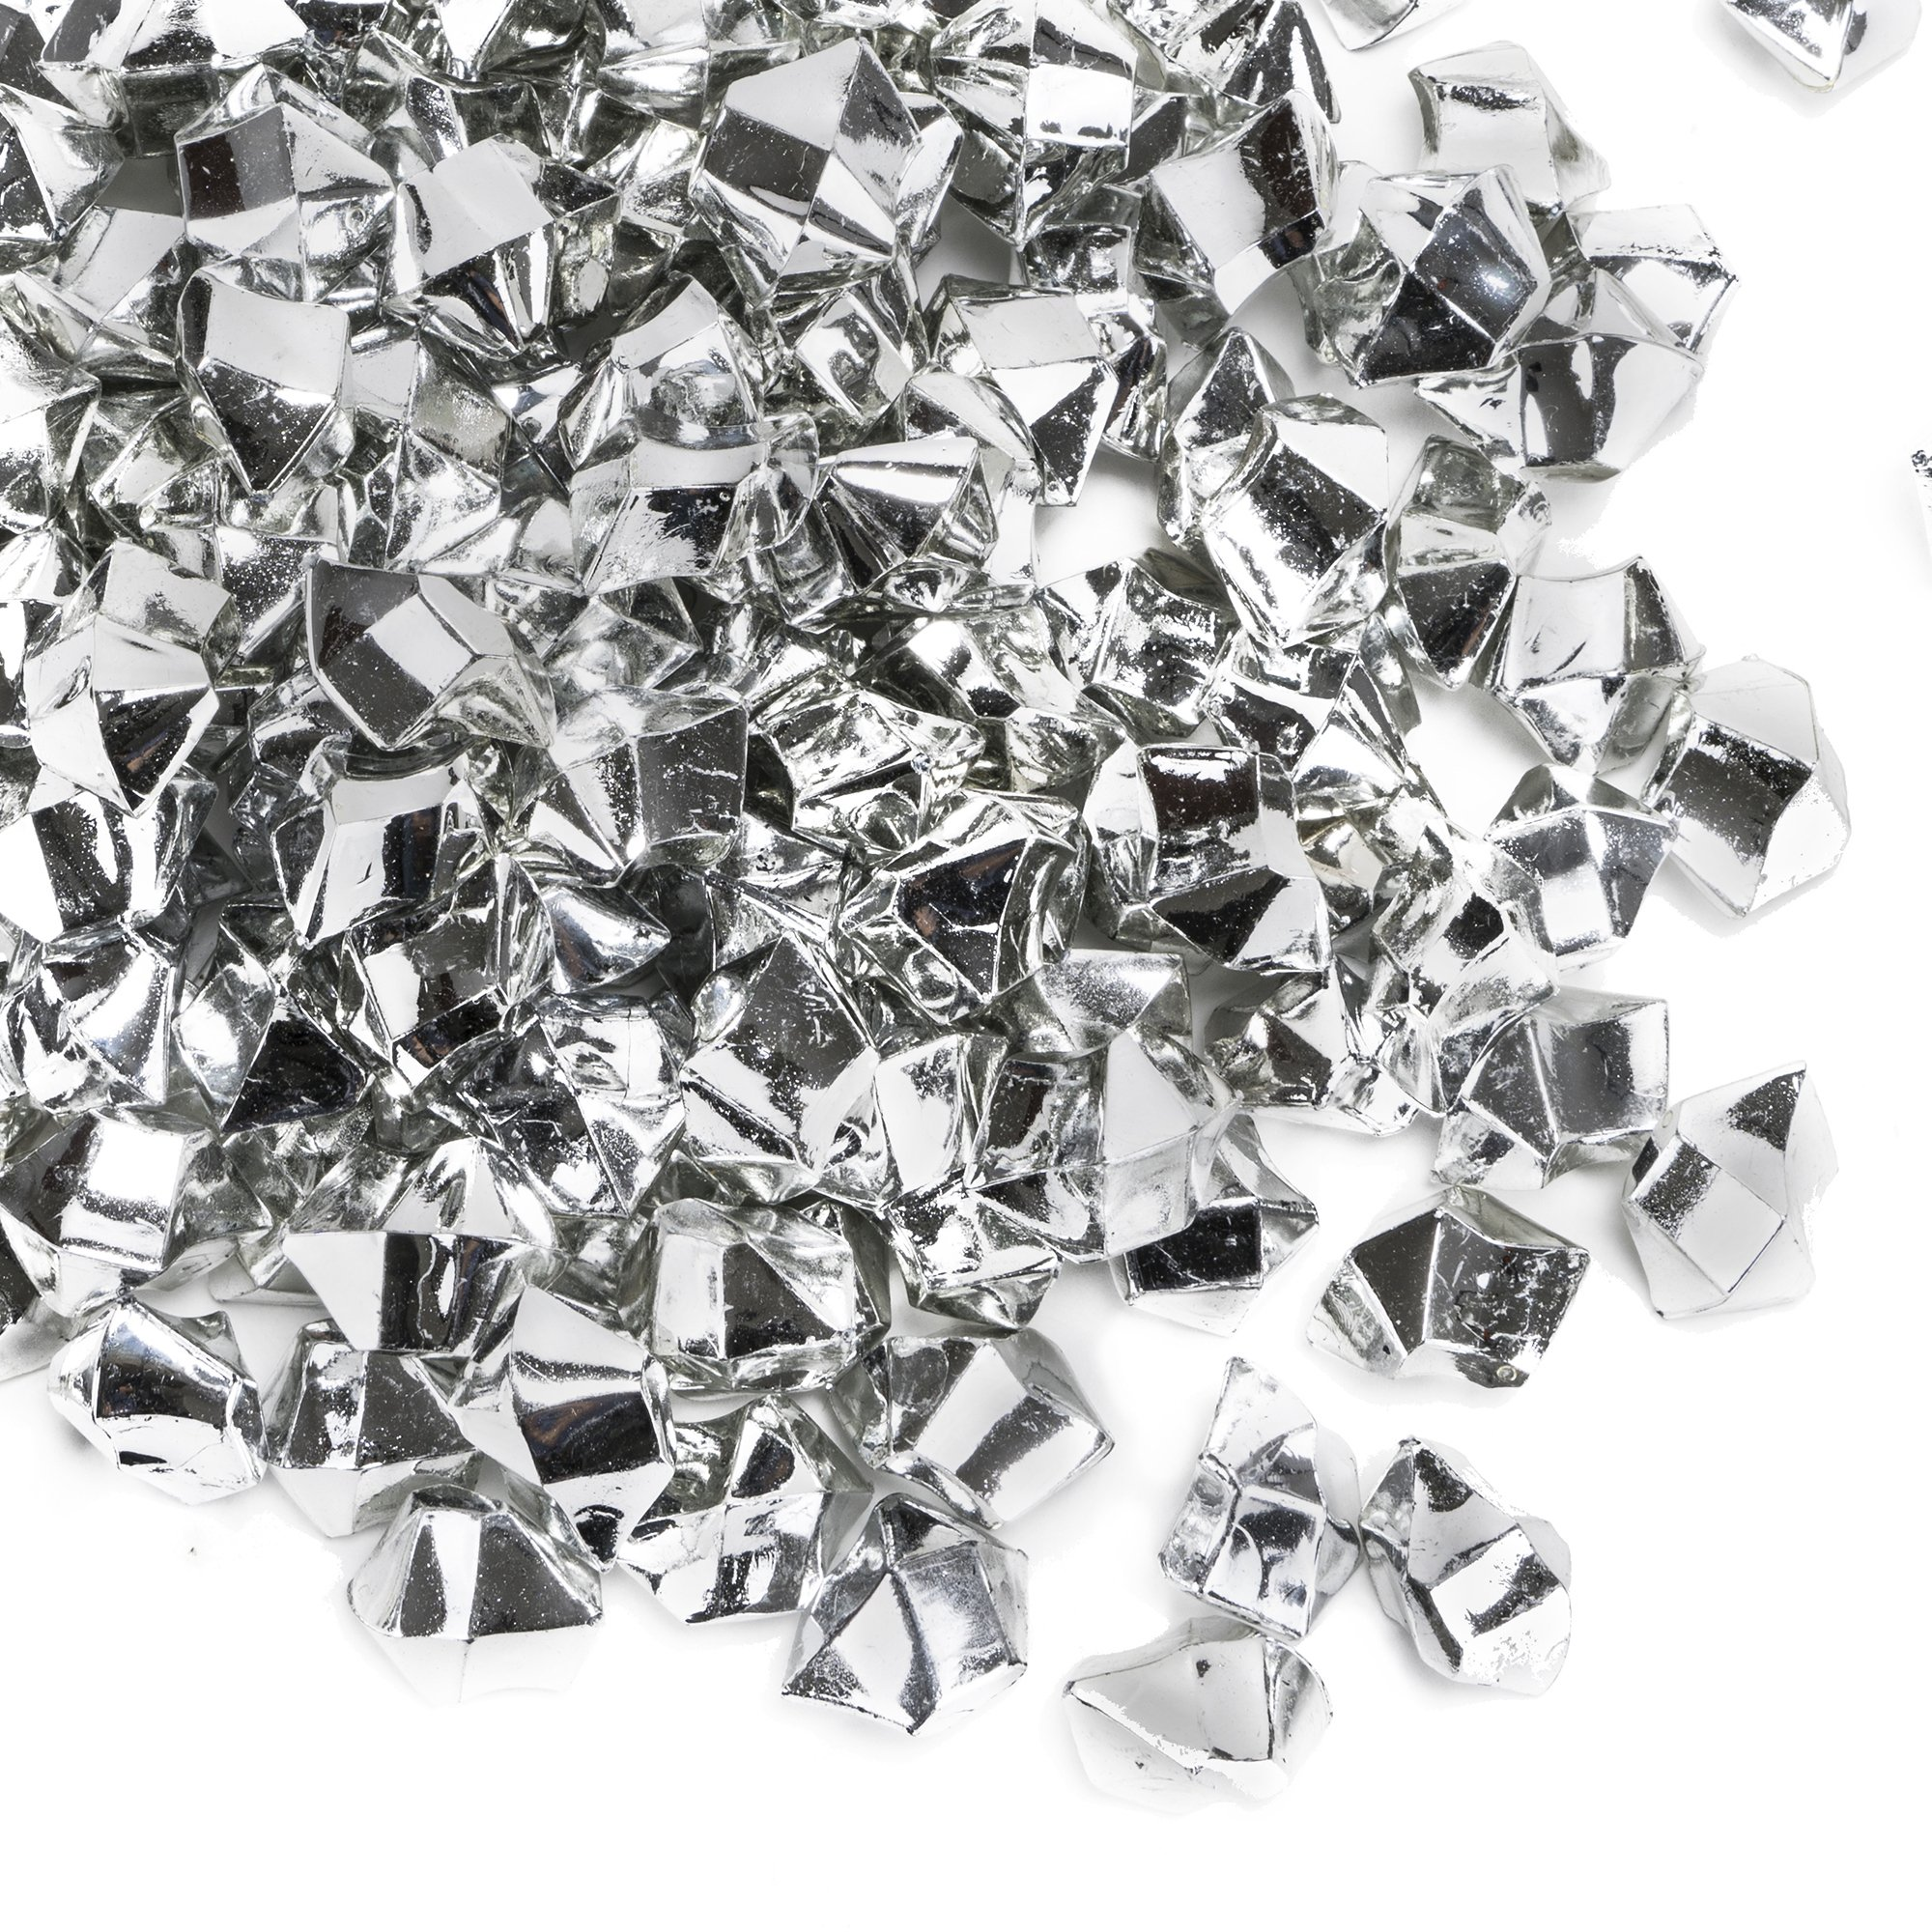 CYS EXCEL Acrylic Ice Rocks for Vase Fillers, Acrylic Gems for Table Scatters, Event, Wedding, Birthday Decoration (Acrylic Ice Silver, 4 Pounds) Wholesale Prices, Saving More! by CYS EXCEL